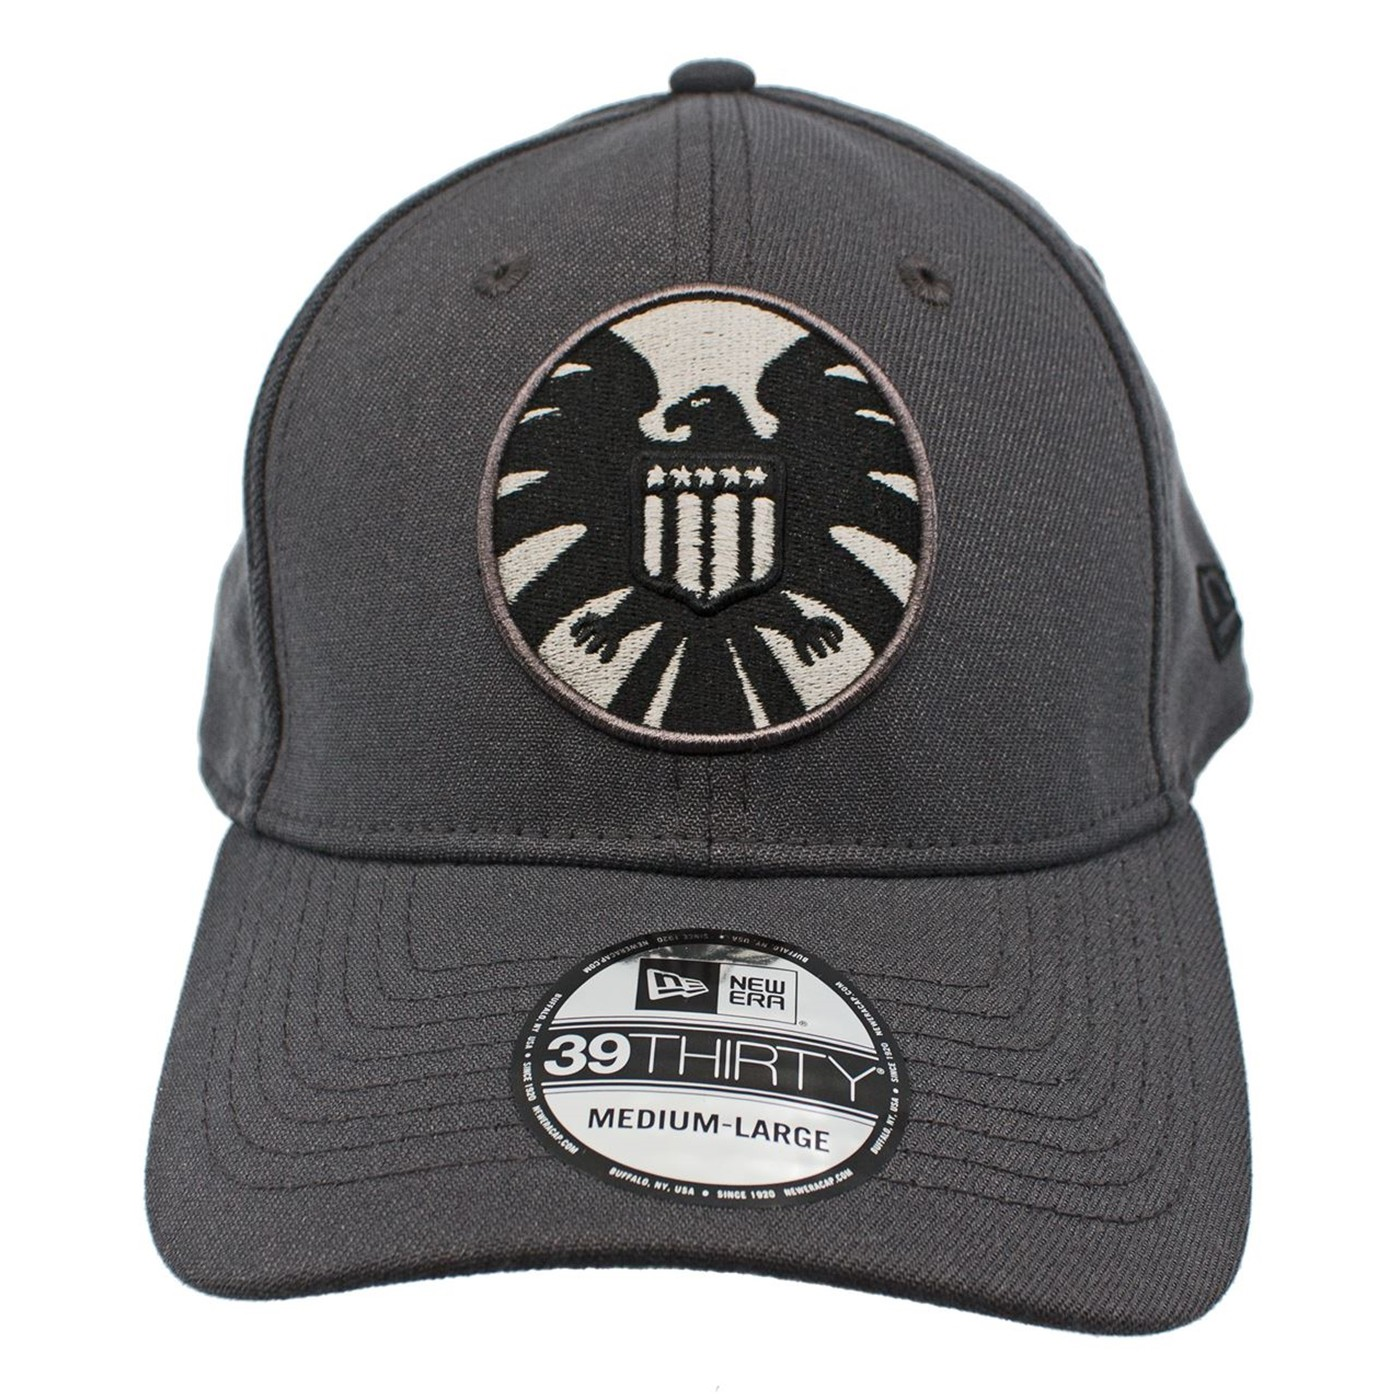 SHIELD Graphite New Era 39Thirty Flex Fit Hat